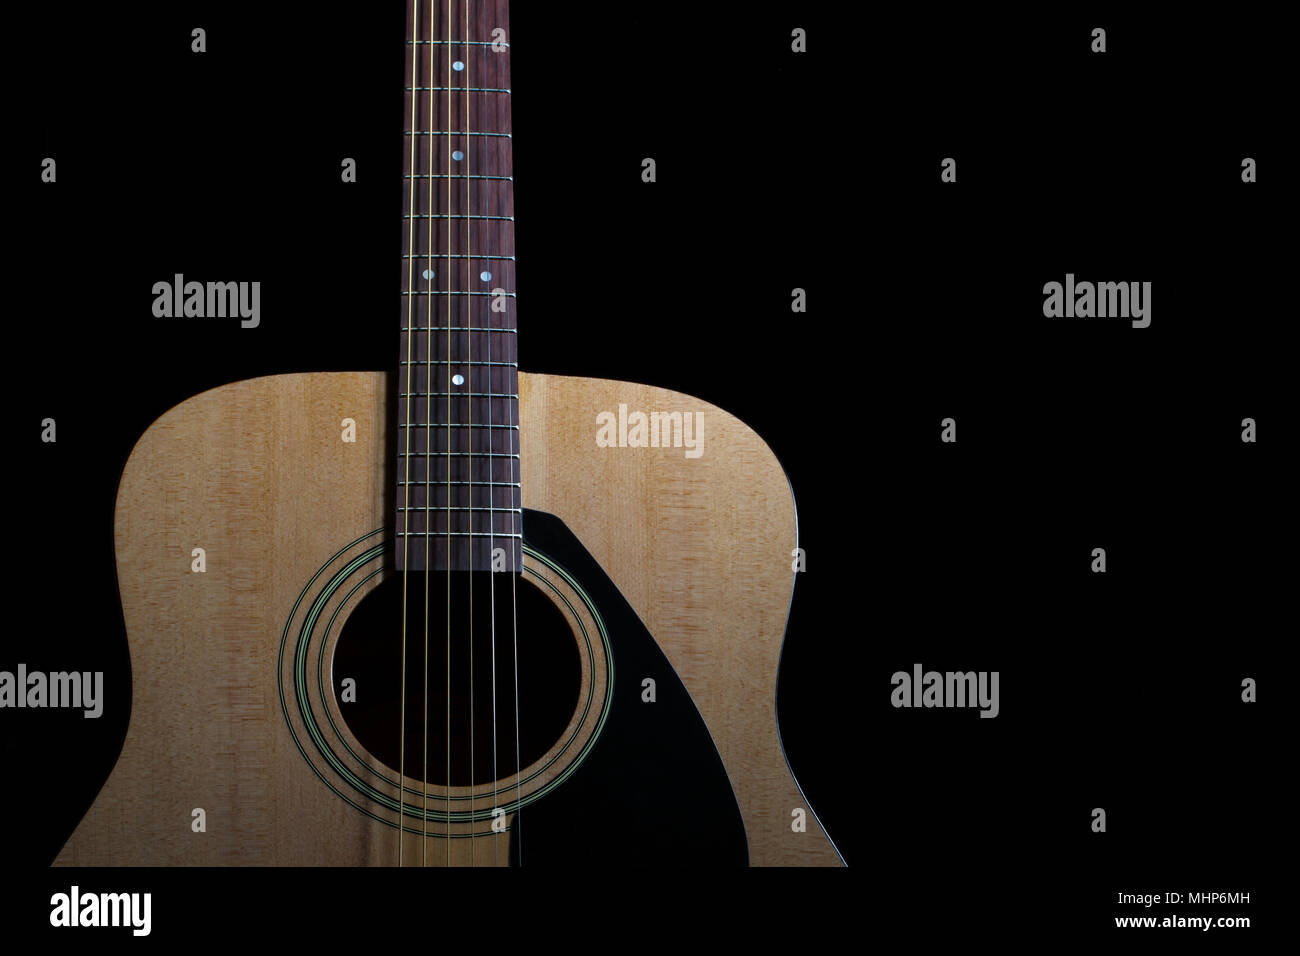 New Acoustic Guitar On Black Background Stock Photo 183041057 Alamy